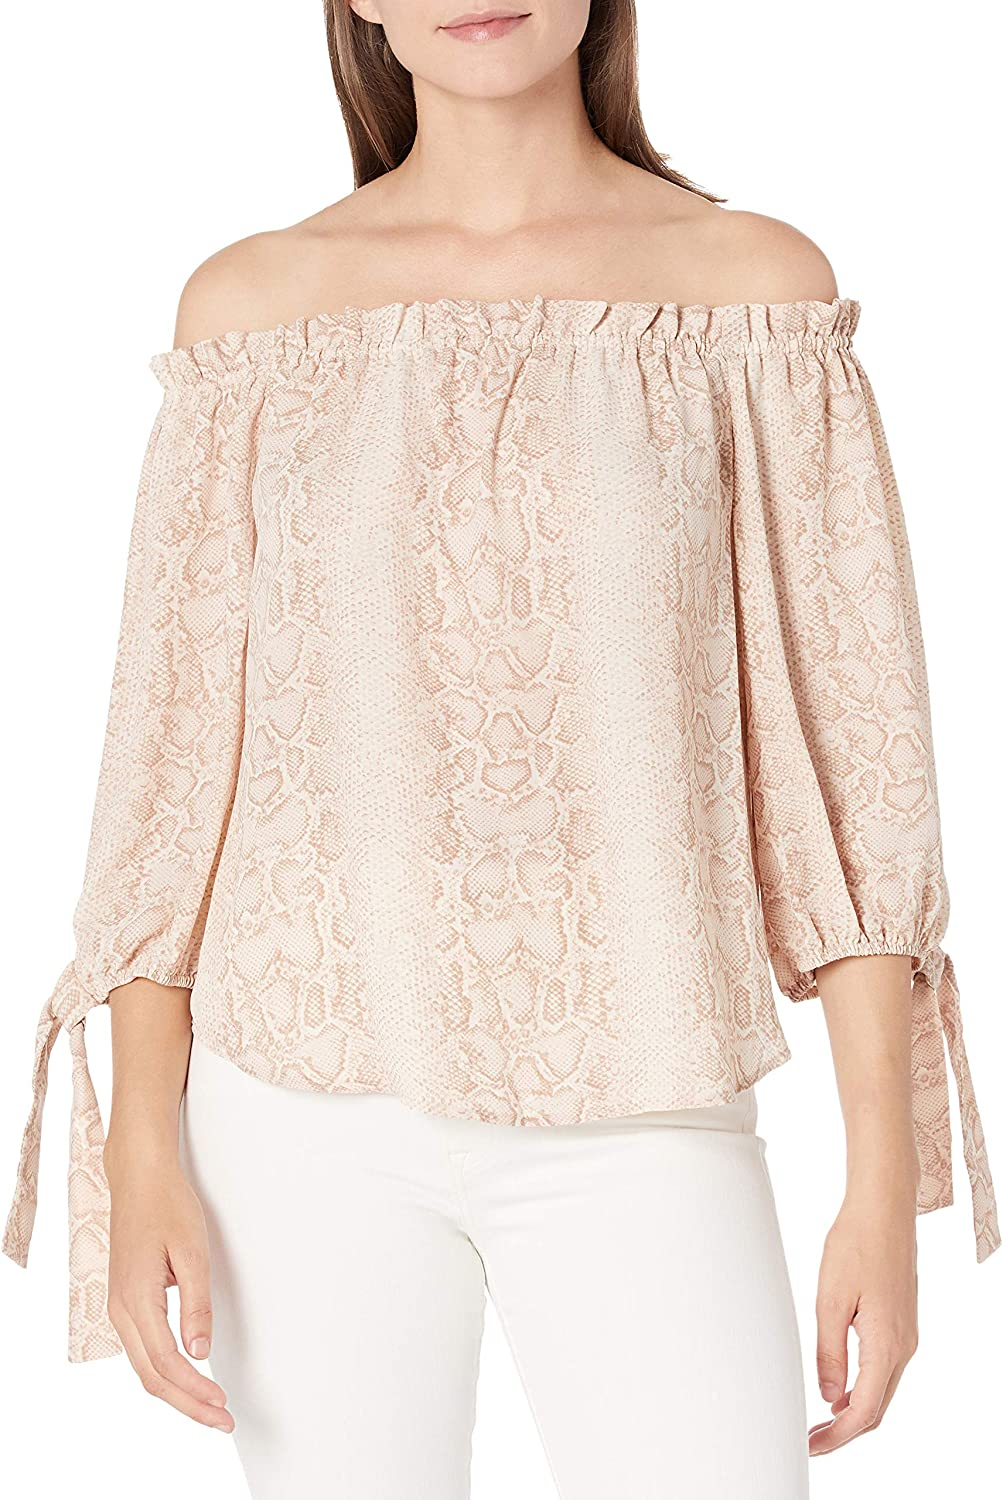 BCBGMAXAZRIA Womens Python Off-Shoulder Blouse